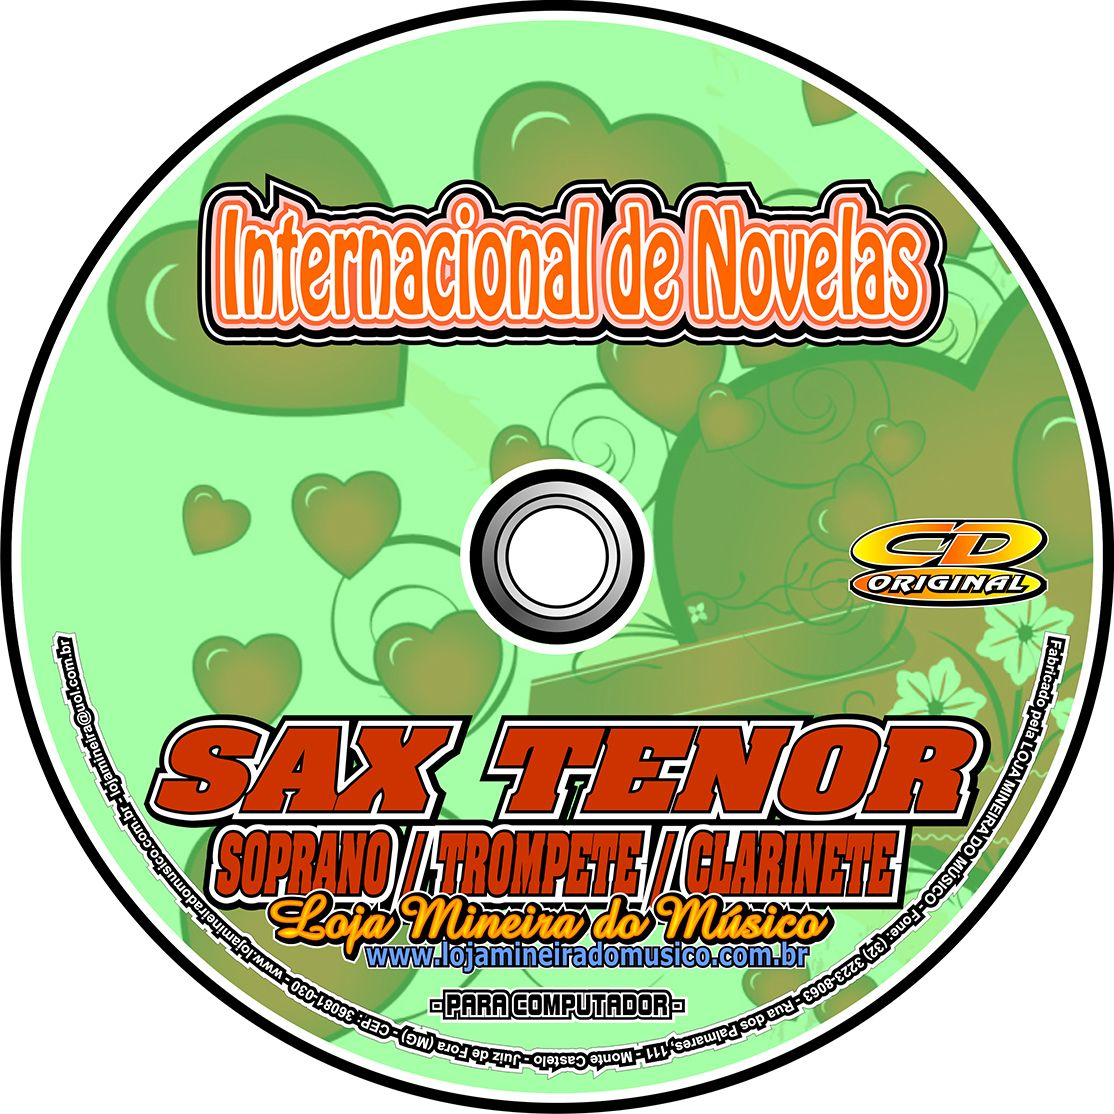 SAX TENOR | SOPRANO Internacionais de Novela Partituras e Playbacks Internacionais MP3